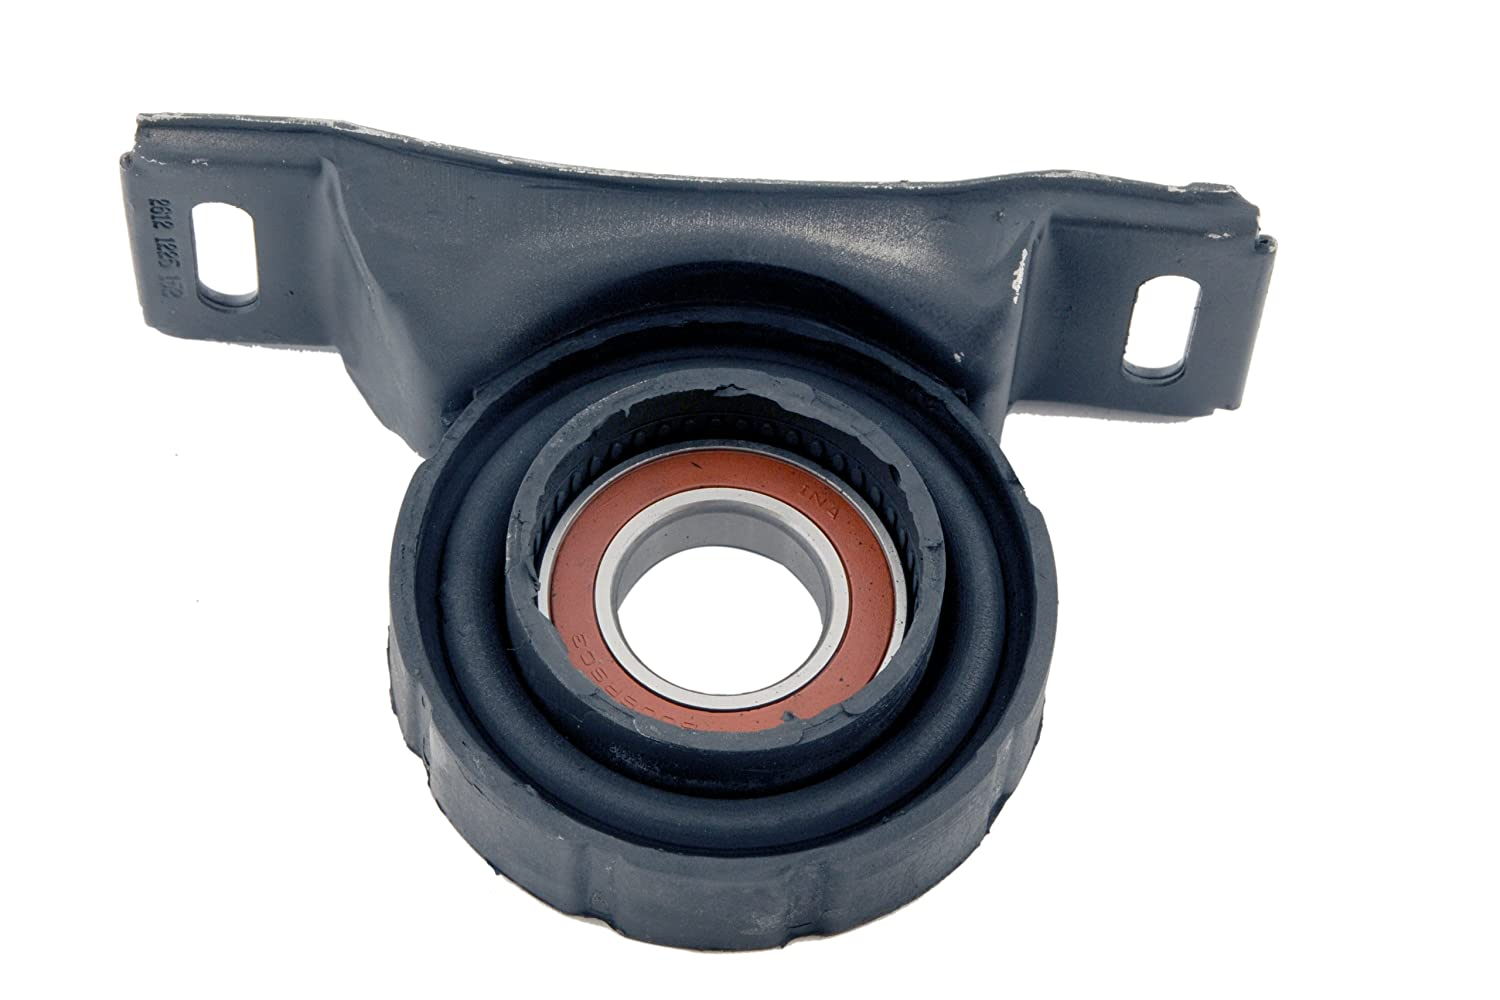 w//Bearing 26-12-1-225-152 MTC 1012 for BMW Models MTC 1012//26-12-1-225-152 Driveshaft Center Support